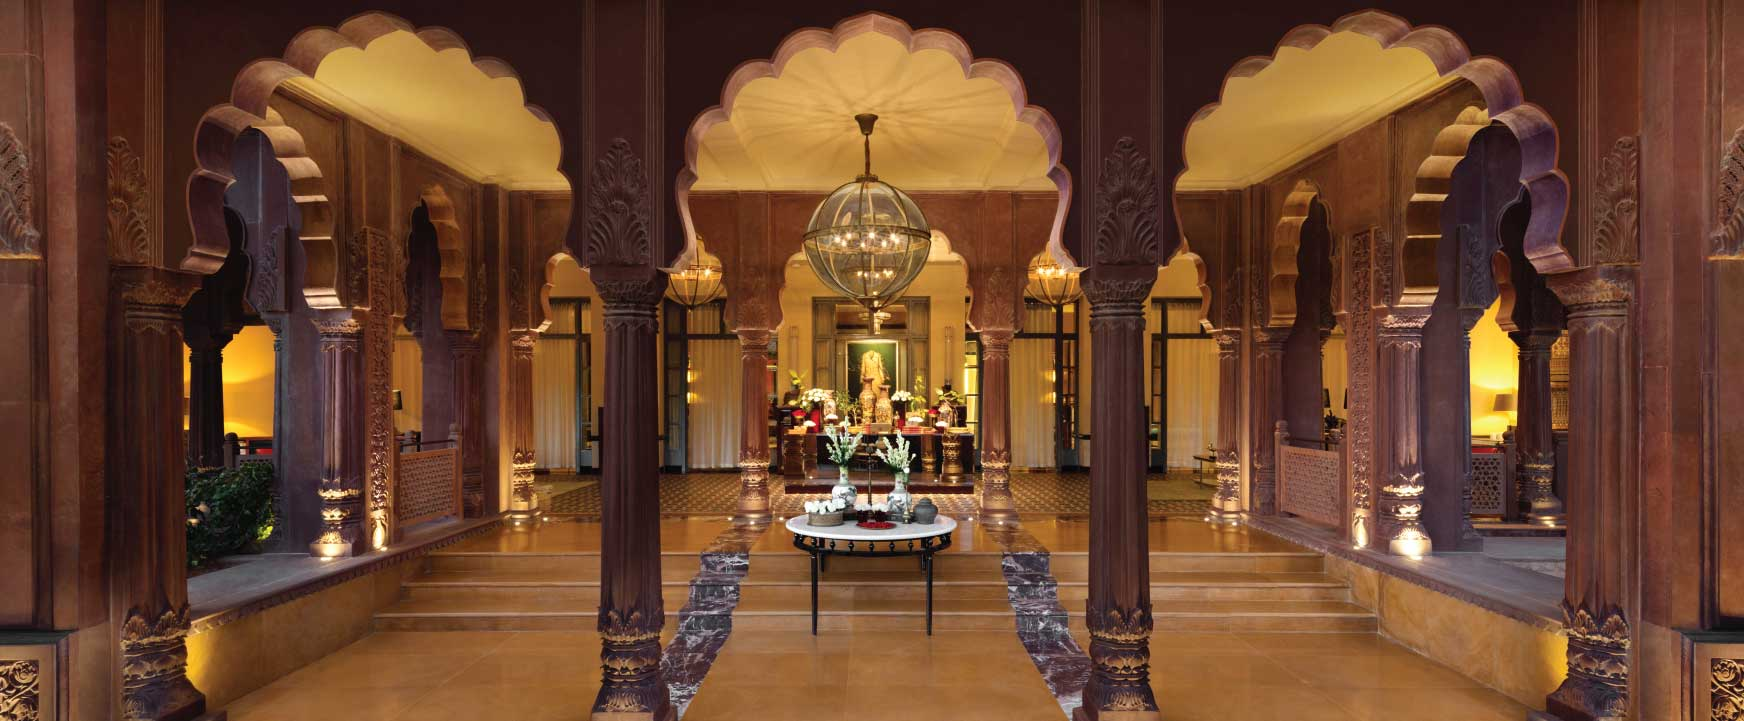 Boutique hotel in Bikaner